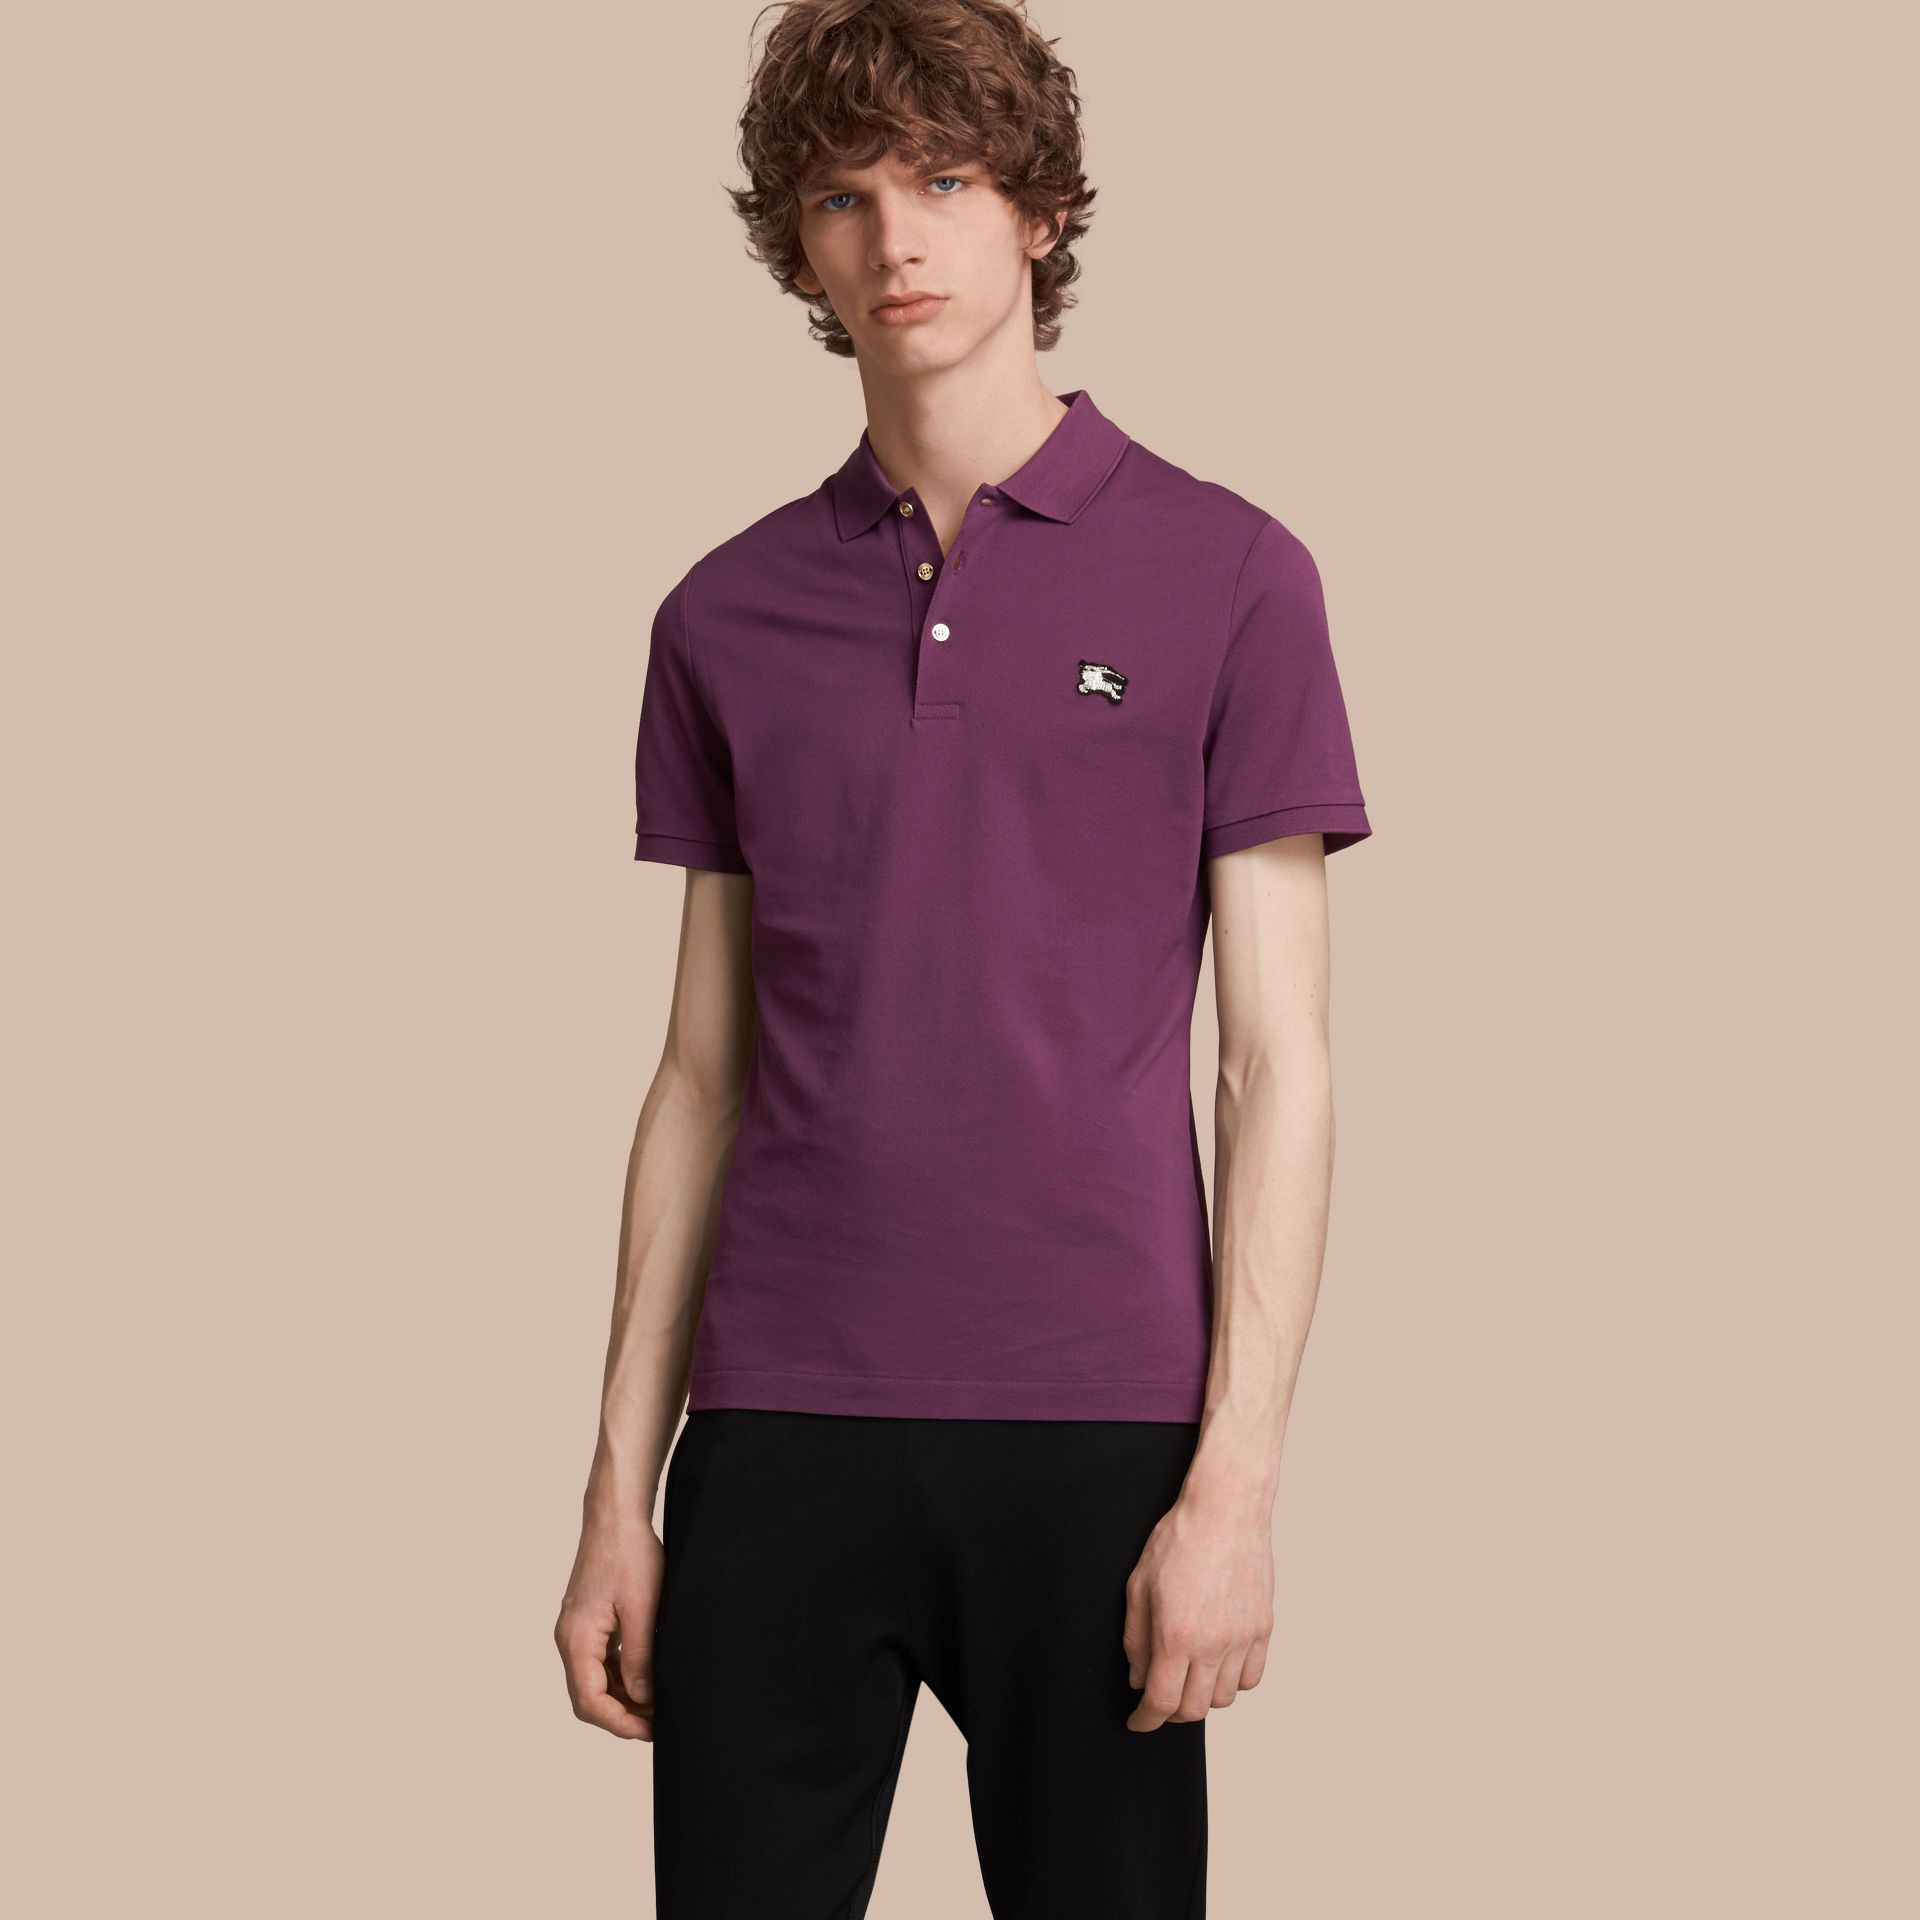 Cotton Piqué Polo Shirt in Heather - Men | Burberry Canada - gallery image 1